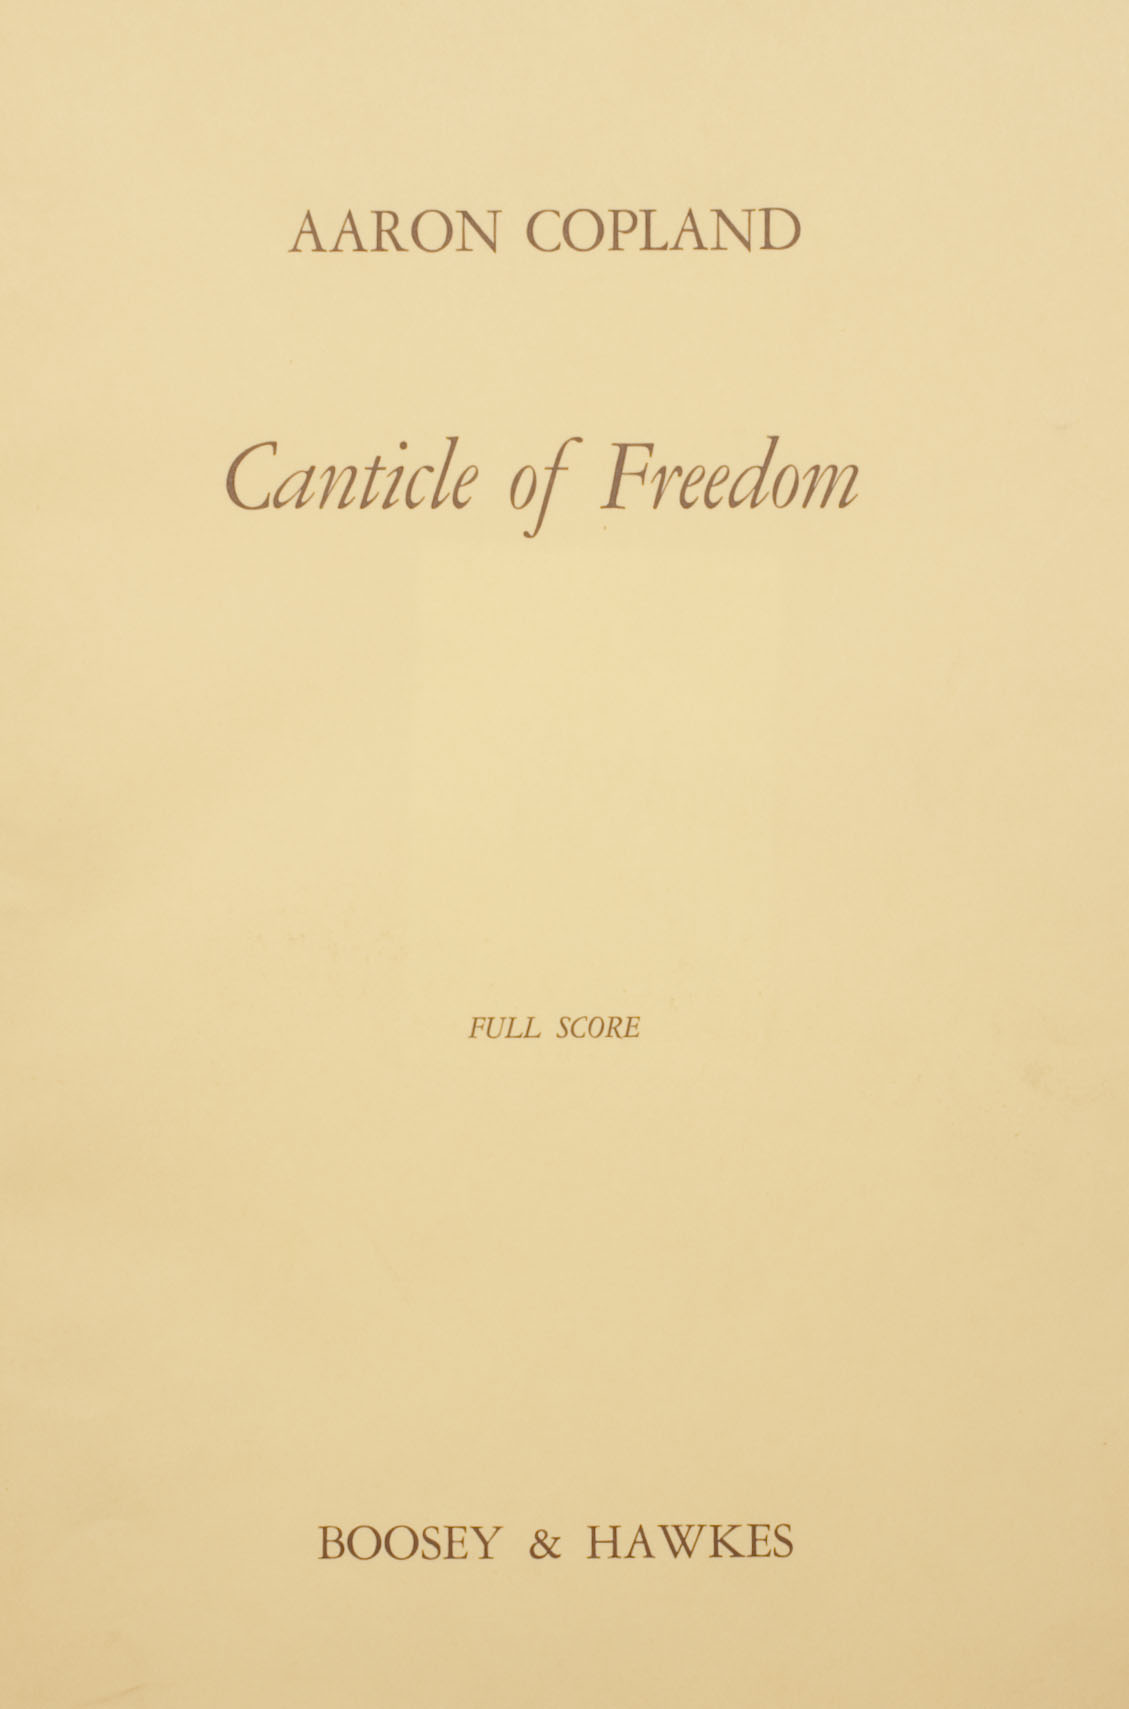 Published score of revised version, 1968